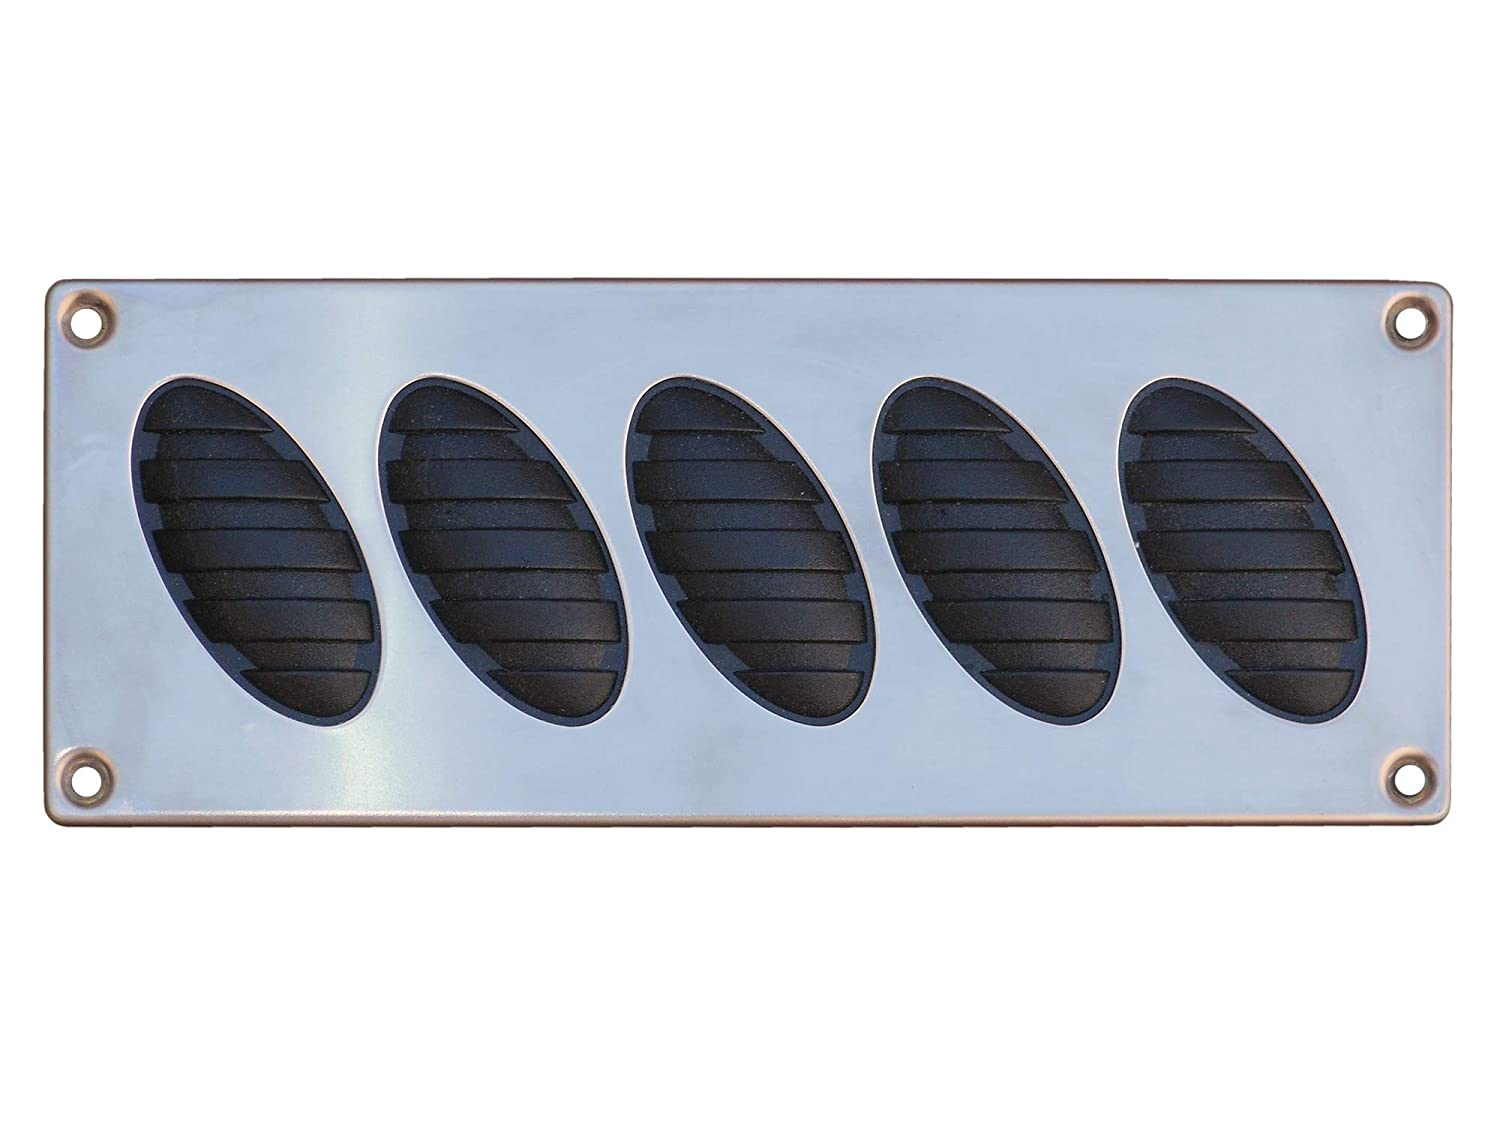 Five Oceans Stainless Steel Padded Step Plates FO-77